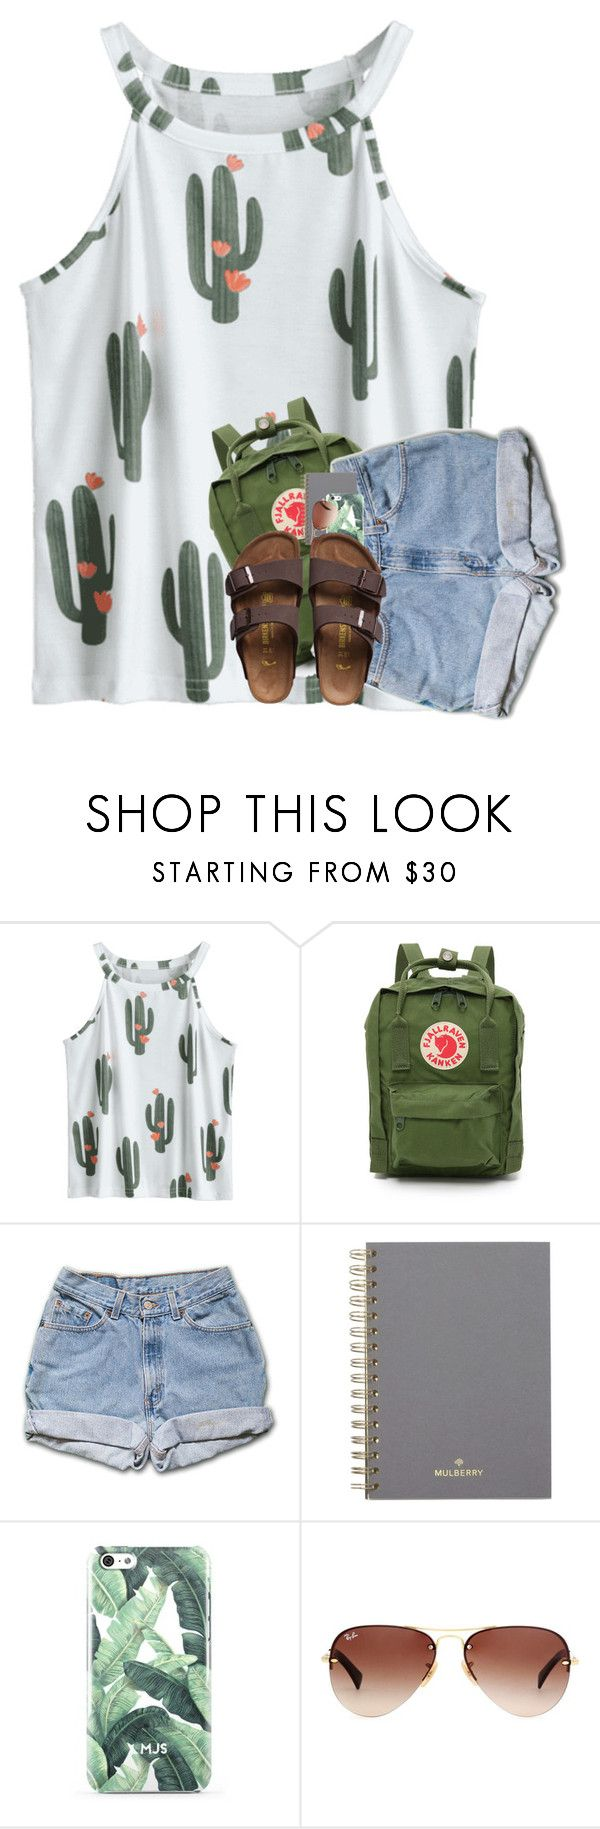 """""""1-30-18 [blog]"""" by katie-1111 ❤ liked on Polyvore featuring Fjällräven, Mulberry, Ray-Ban and Birkenstock"""